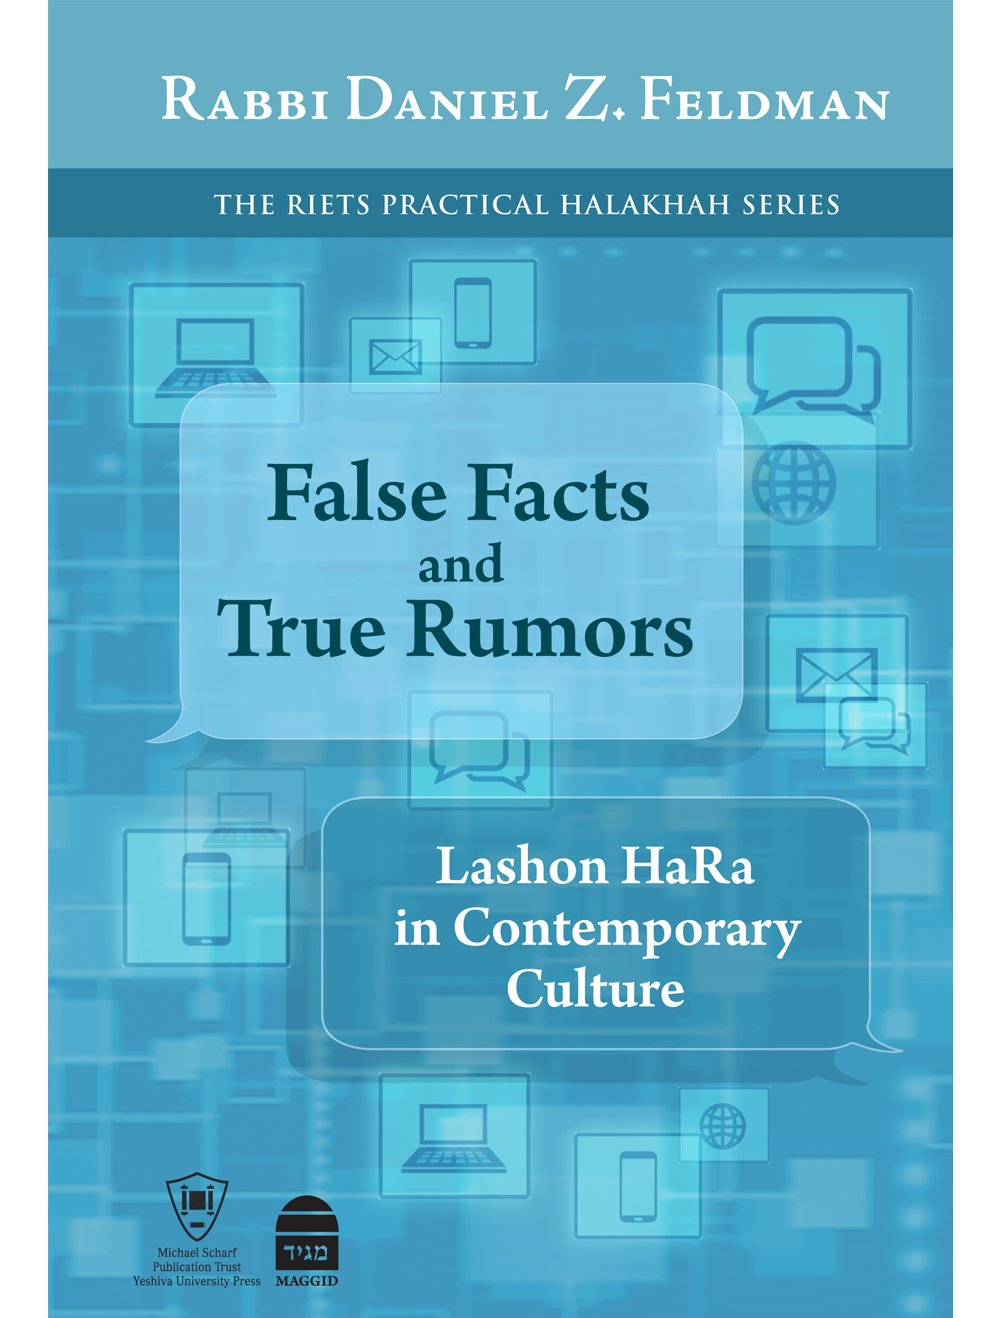 False facts and true rumors lashon hara in contemporary culture false facts and true rumors lashon hara in contemporary culture daniel z feldman 9781592644414 amazon books fandeluxe Image collections